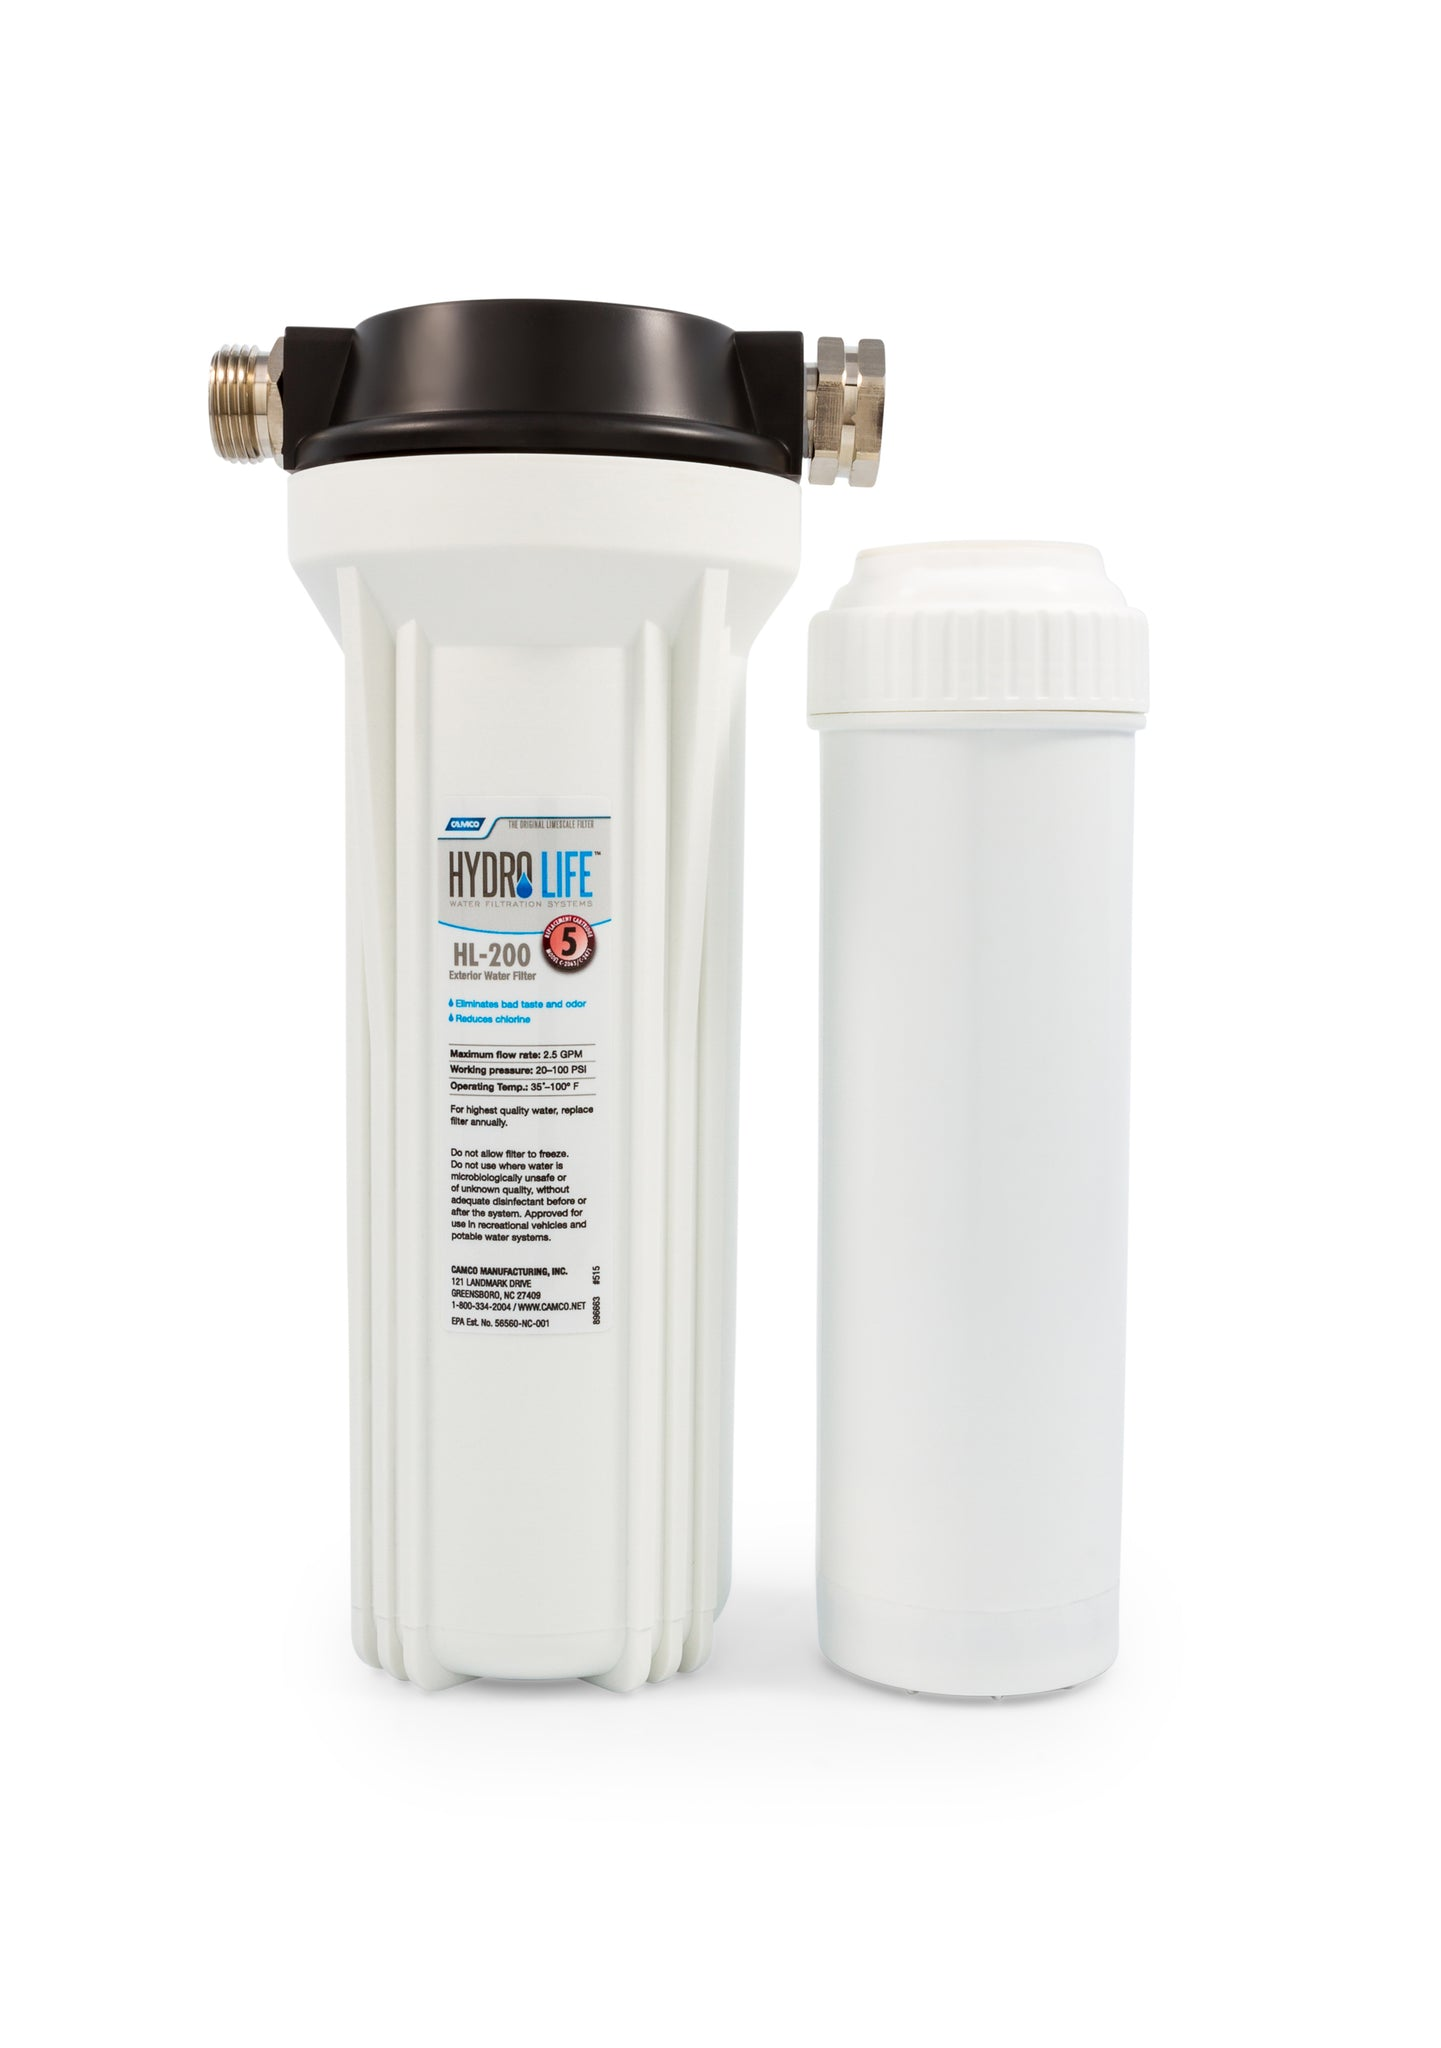 Hydro Life 200 - External Filter Kit Including C 2063 Ctg (6 / case)